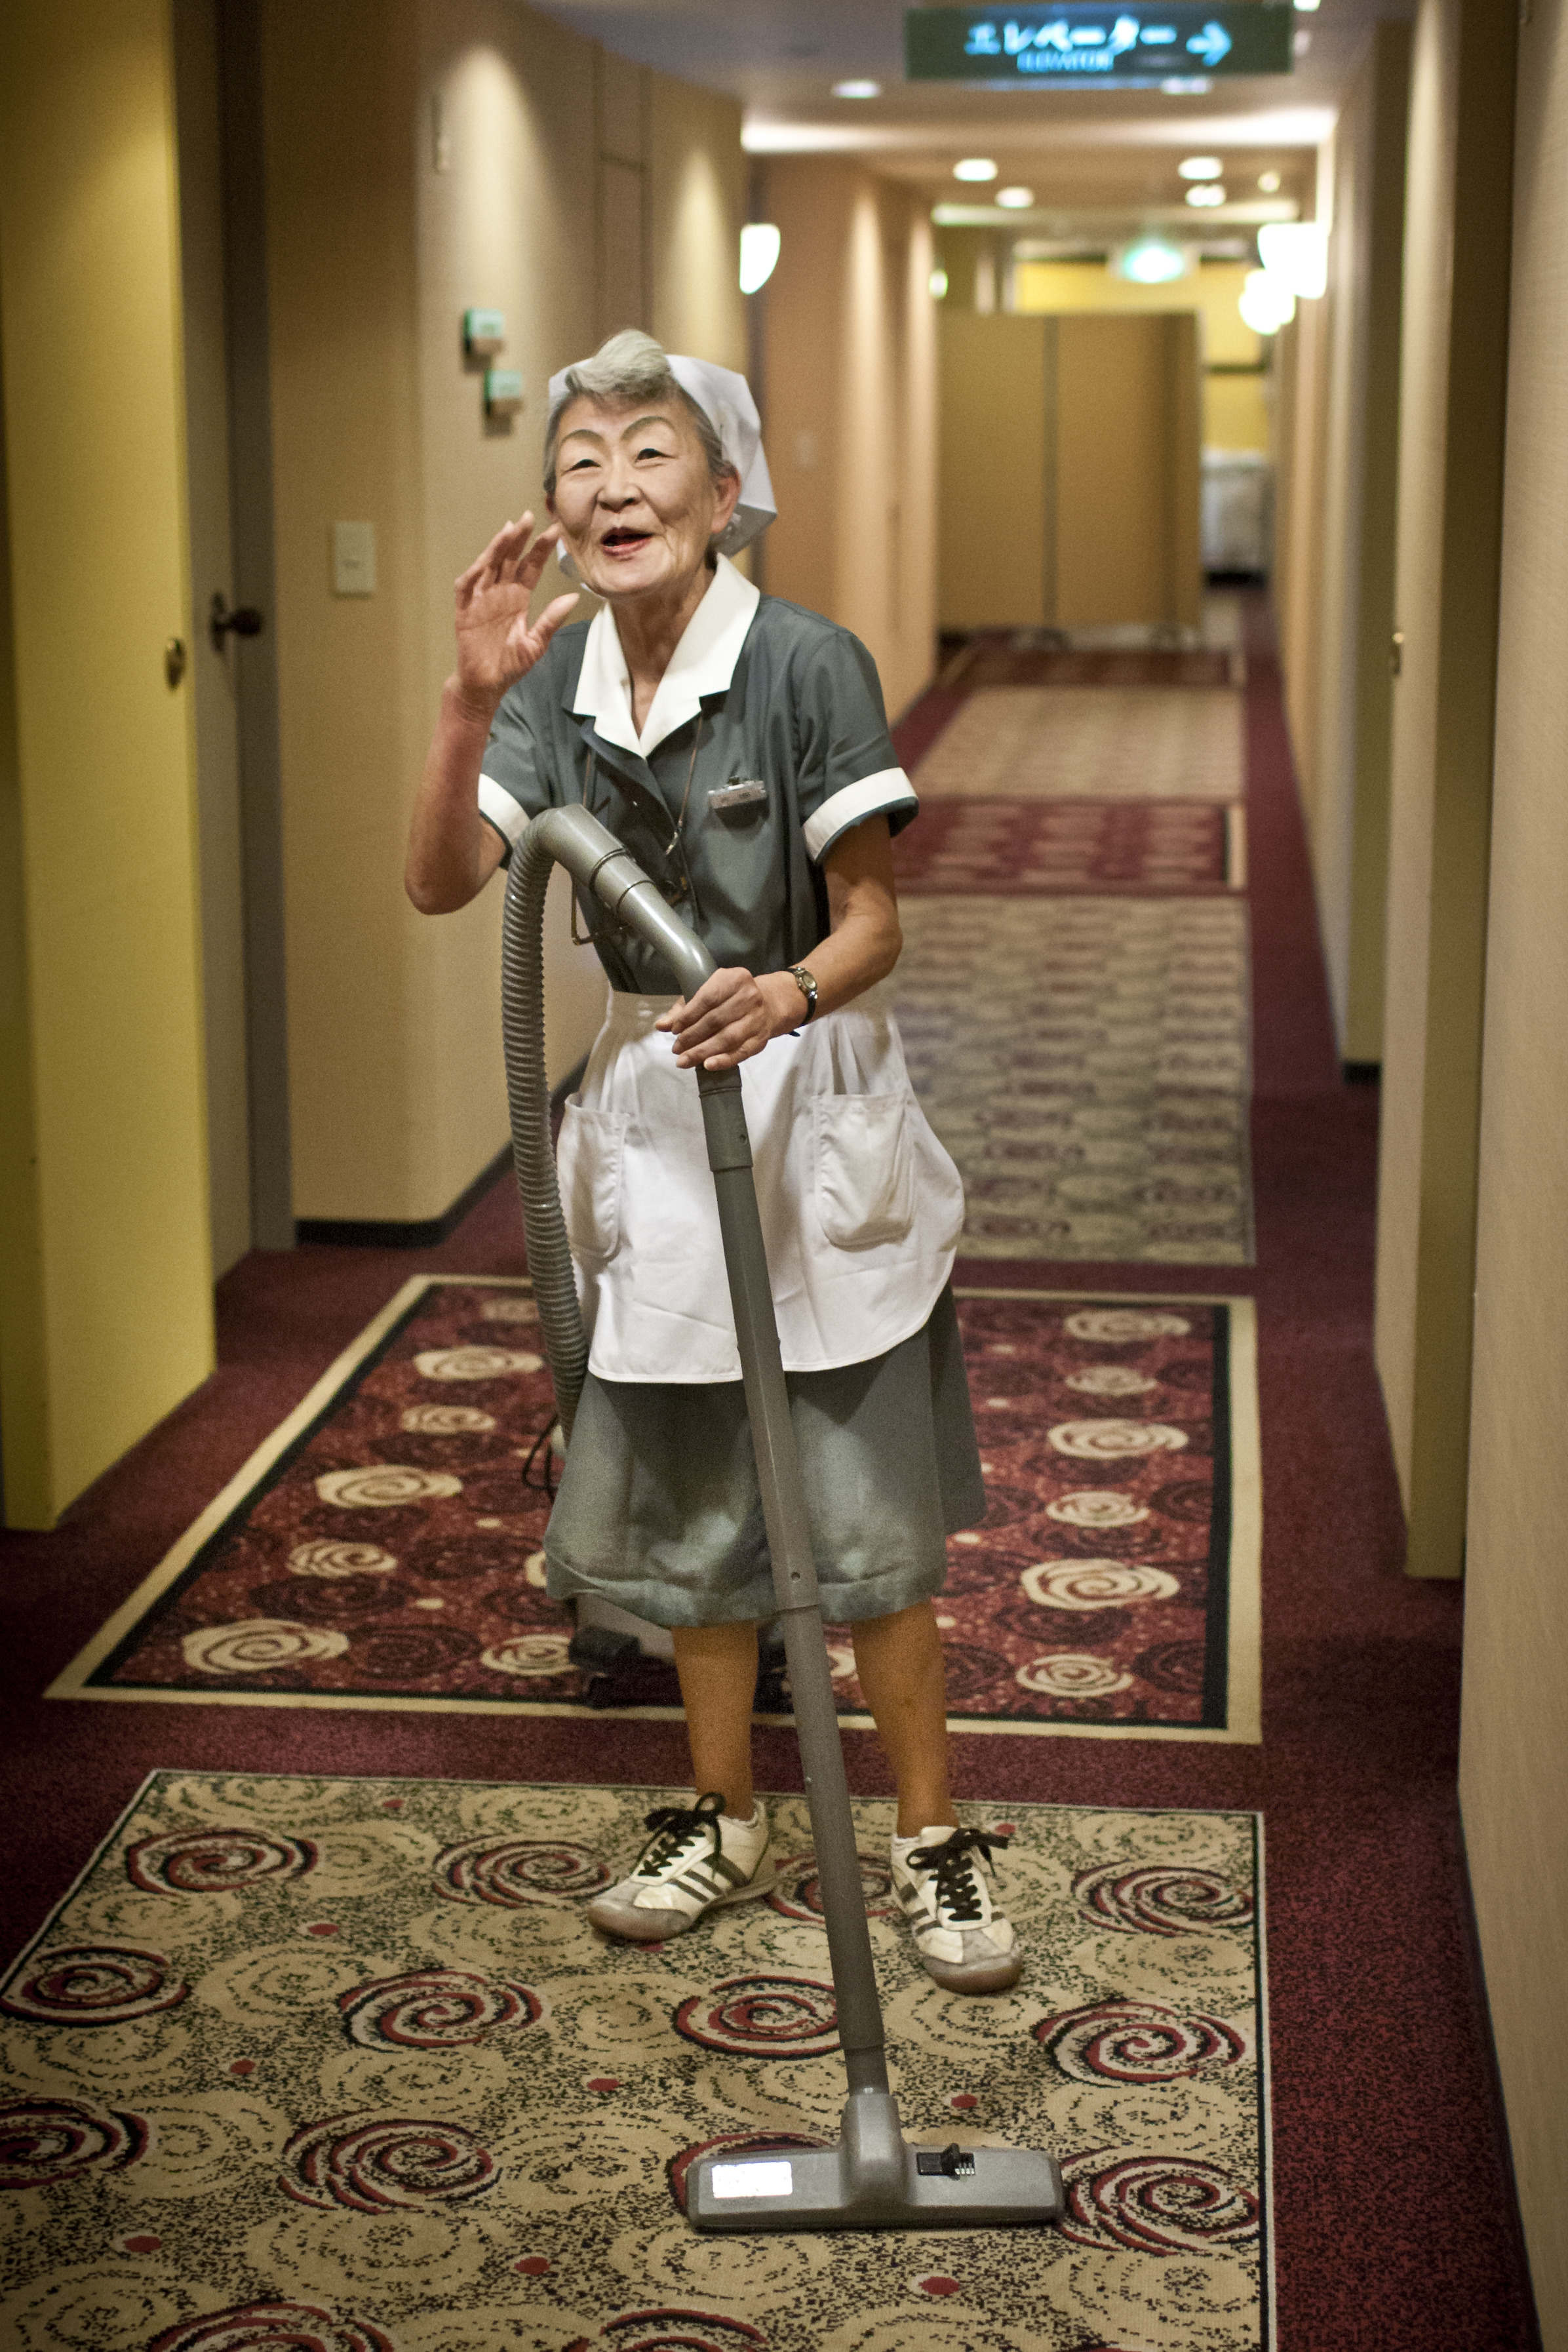 A hotel maid in hallway in Japan